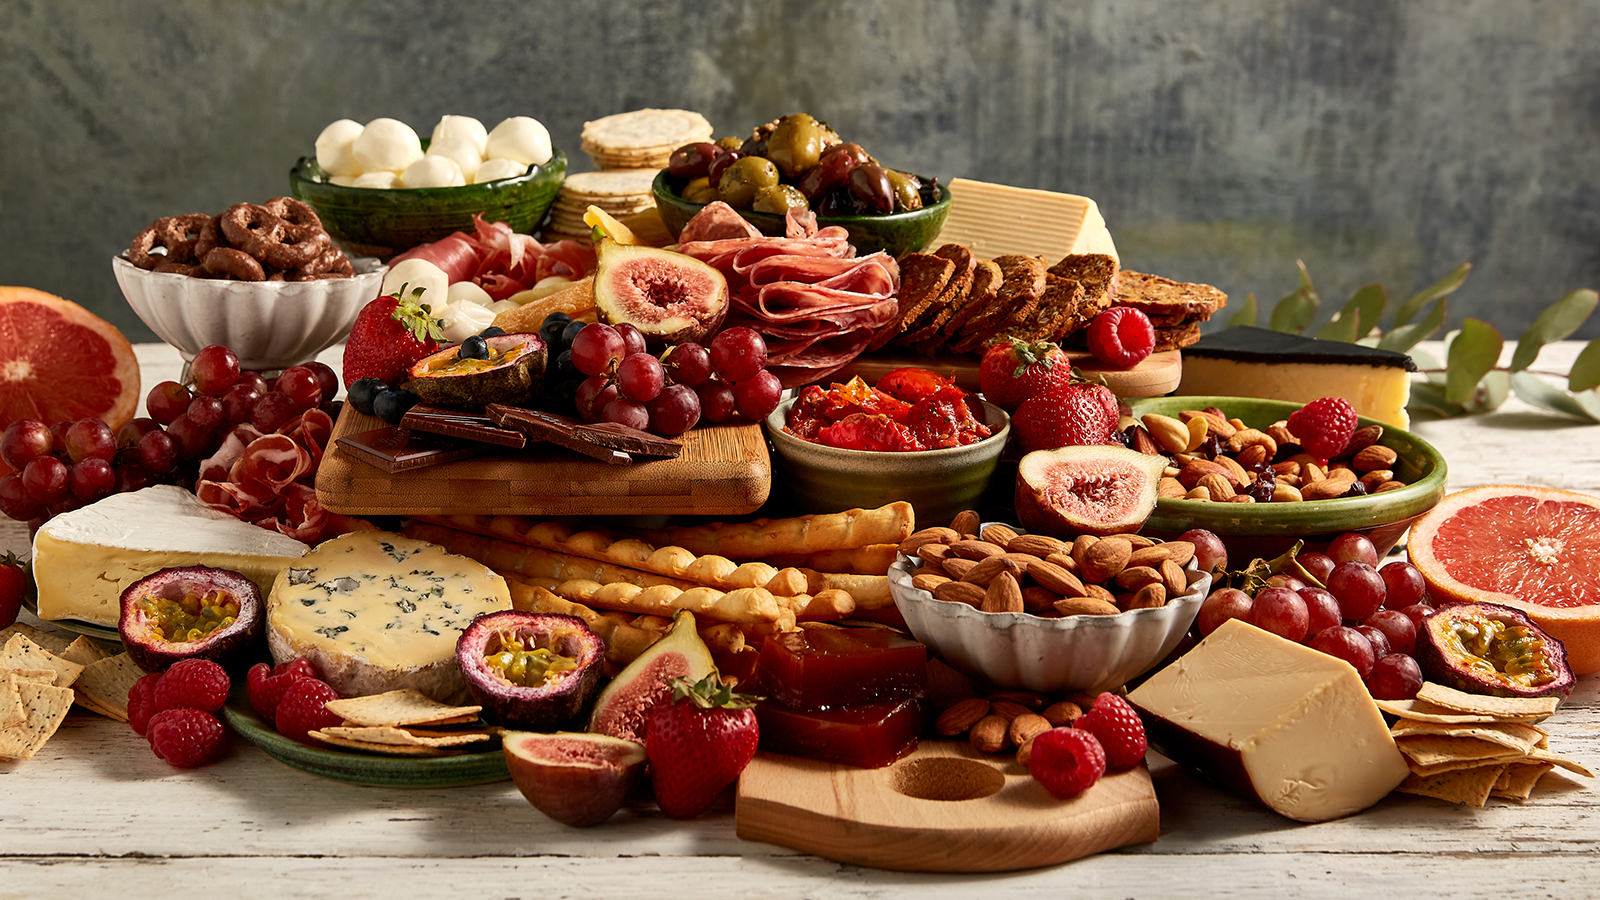 How To Make A Show Stopping Grazing Board The Neff Kitchen